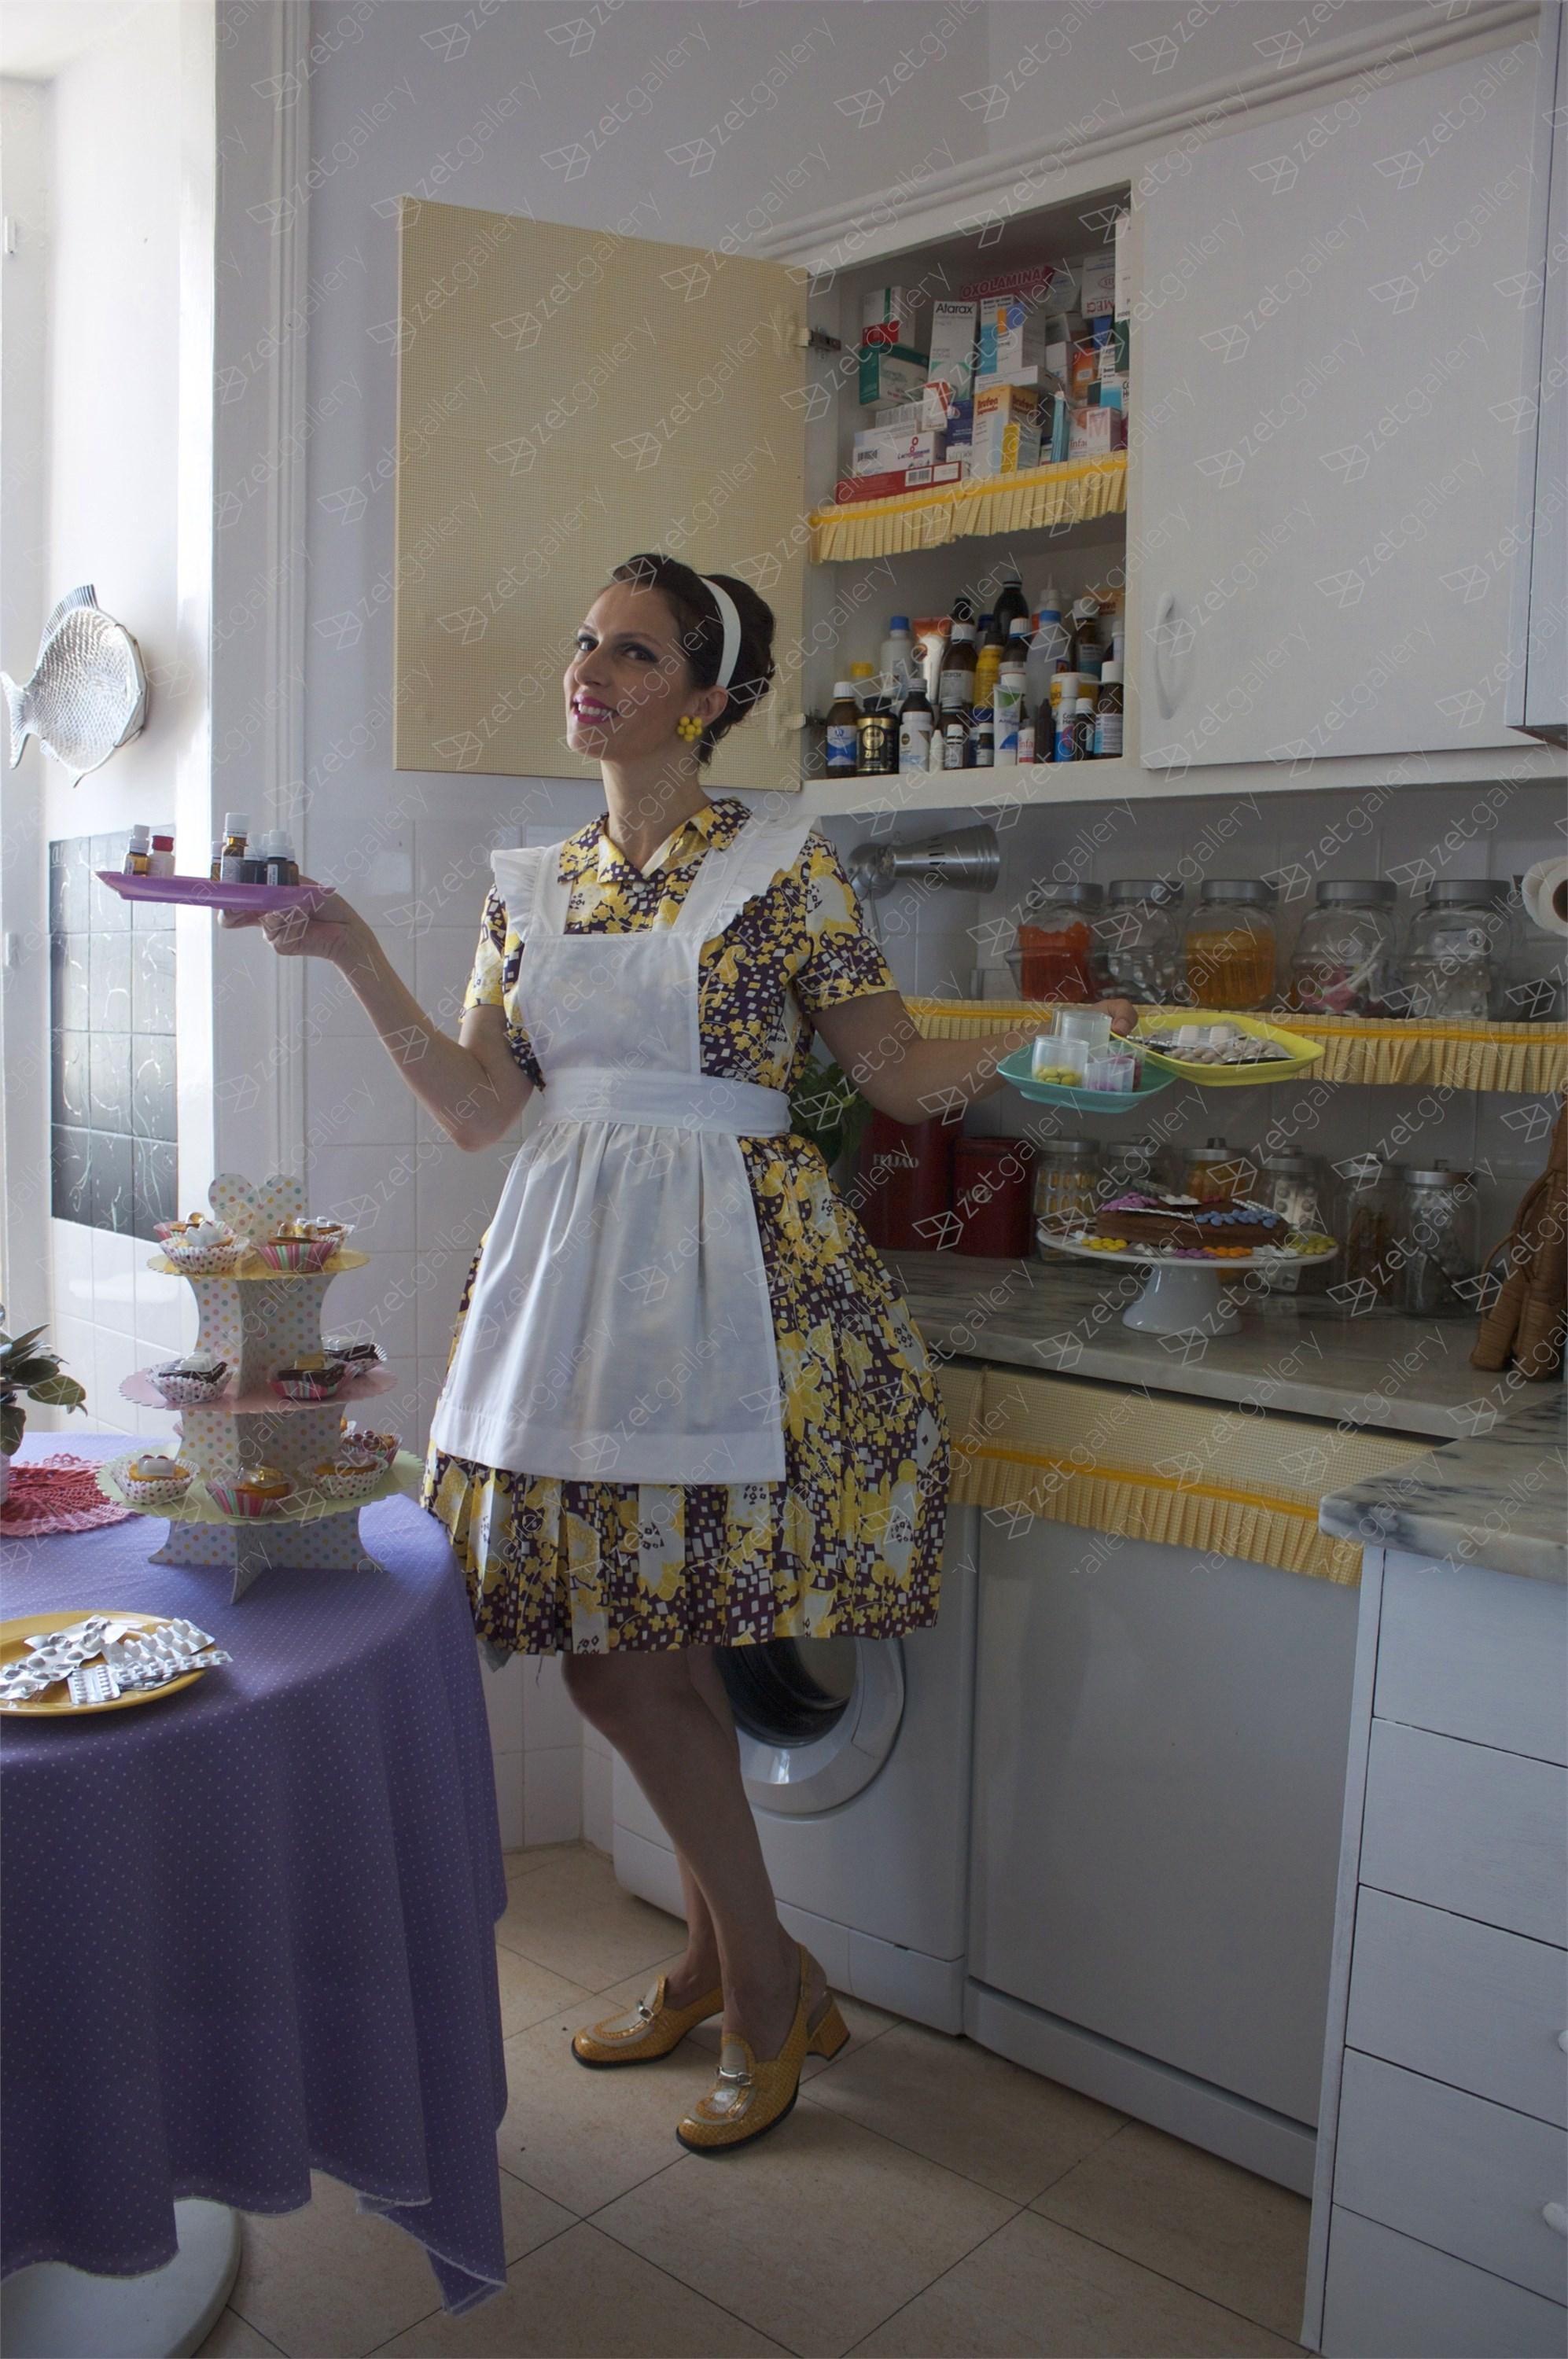 The perfect housewife, Fotografia Digital Vanguarda original por Claudia Clemente